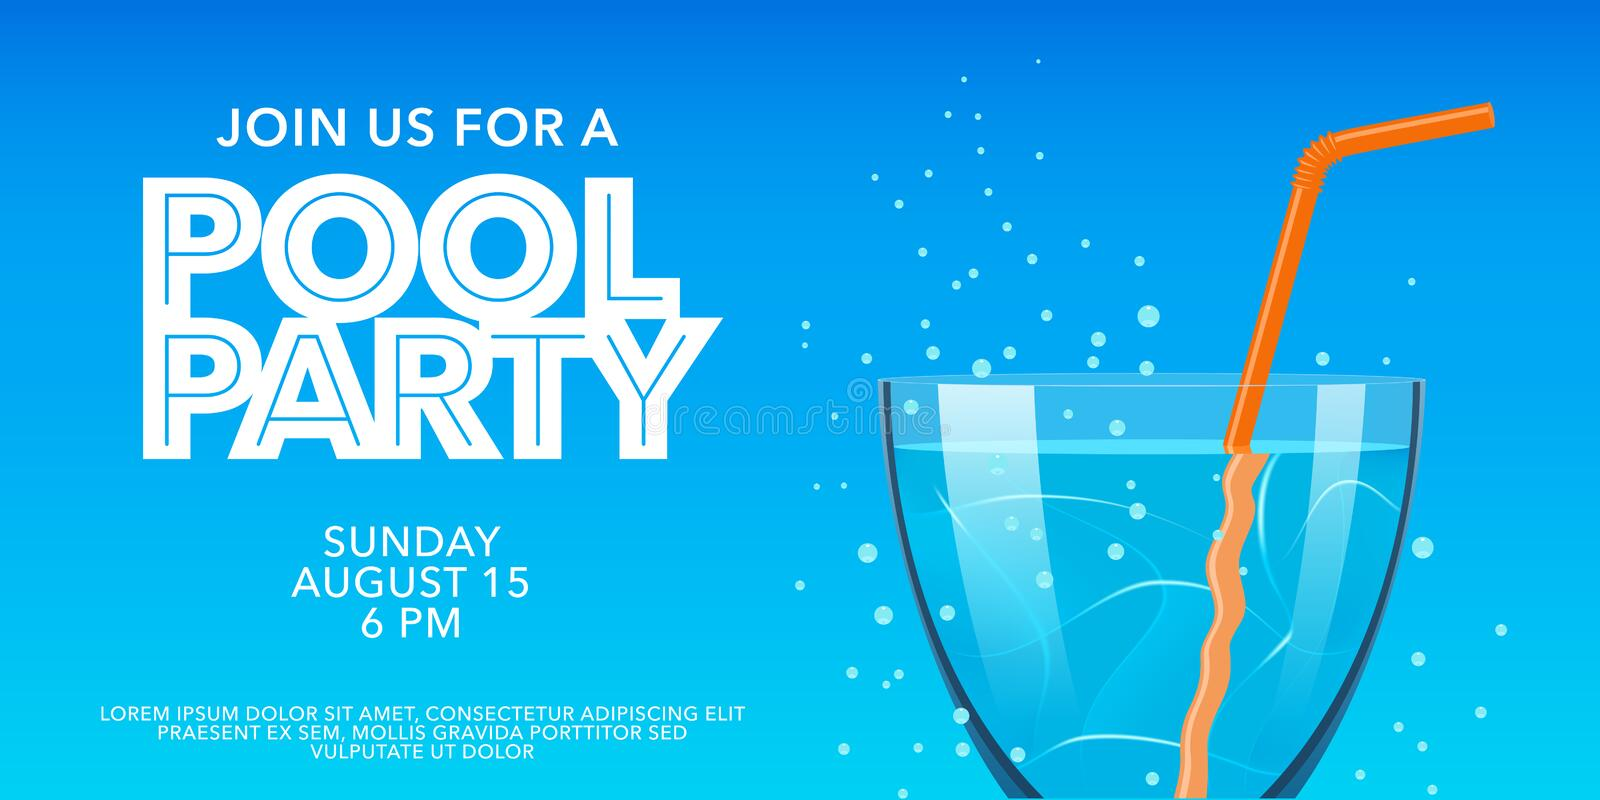 Pool party horizontal banner with drinking glass on blue background vector illustration. Template design element for summer party invite vector illustration